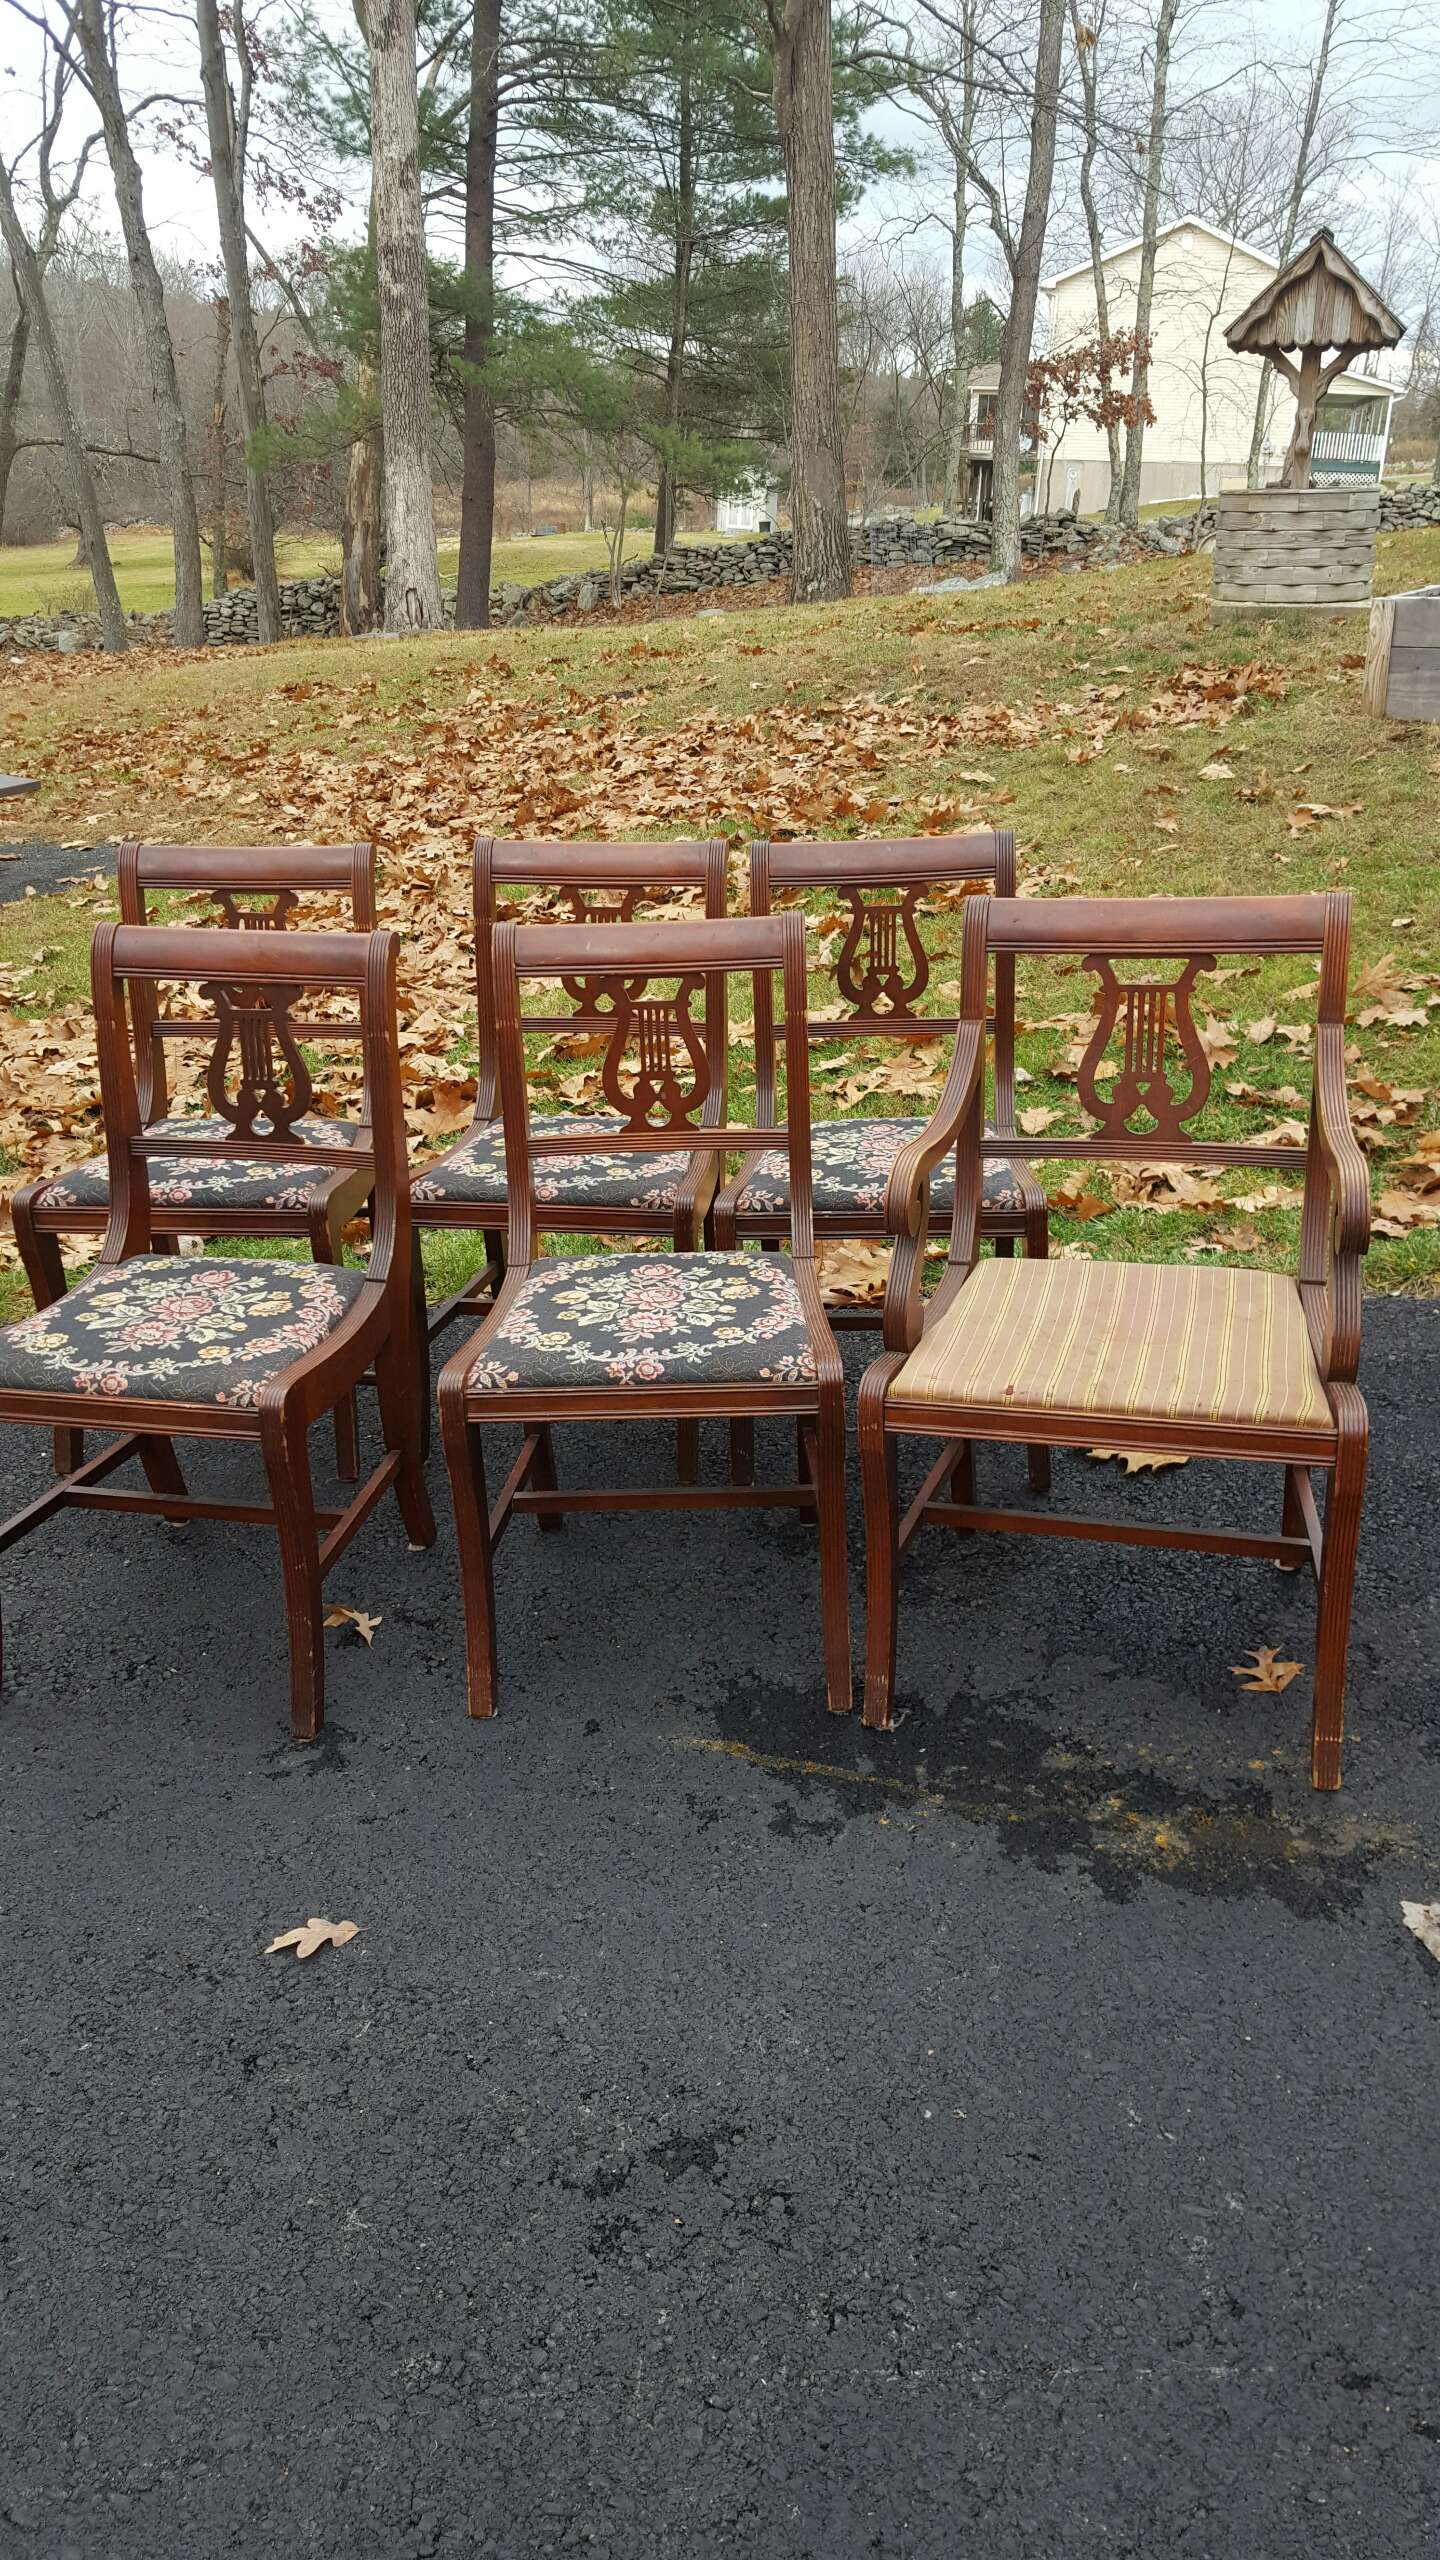 6 antique chairs harp design for sale in Milford PA5miles Buy